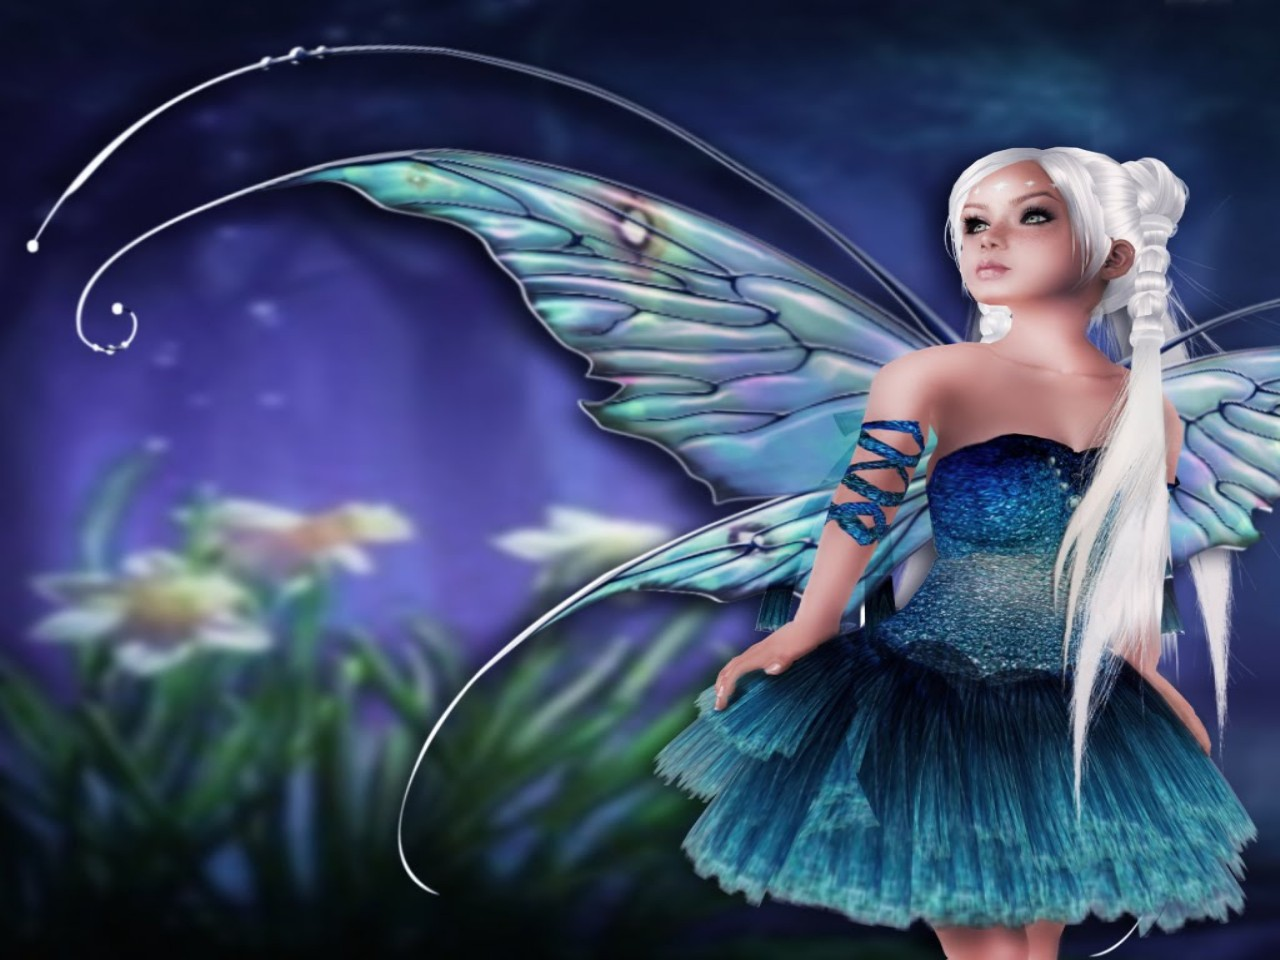 Free Download Fantasy Fairies Wallpaper Which Is Under The